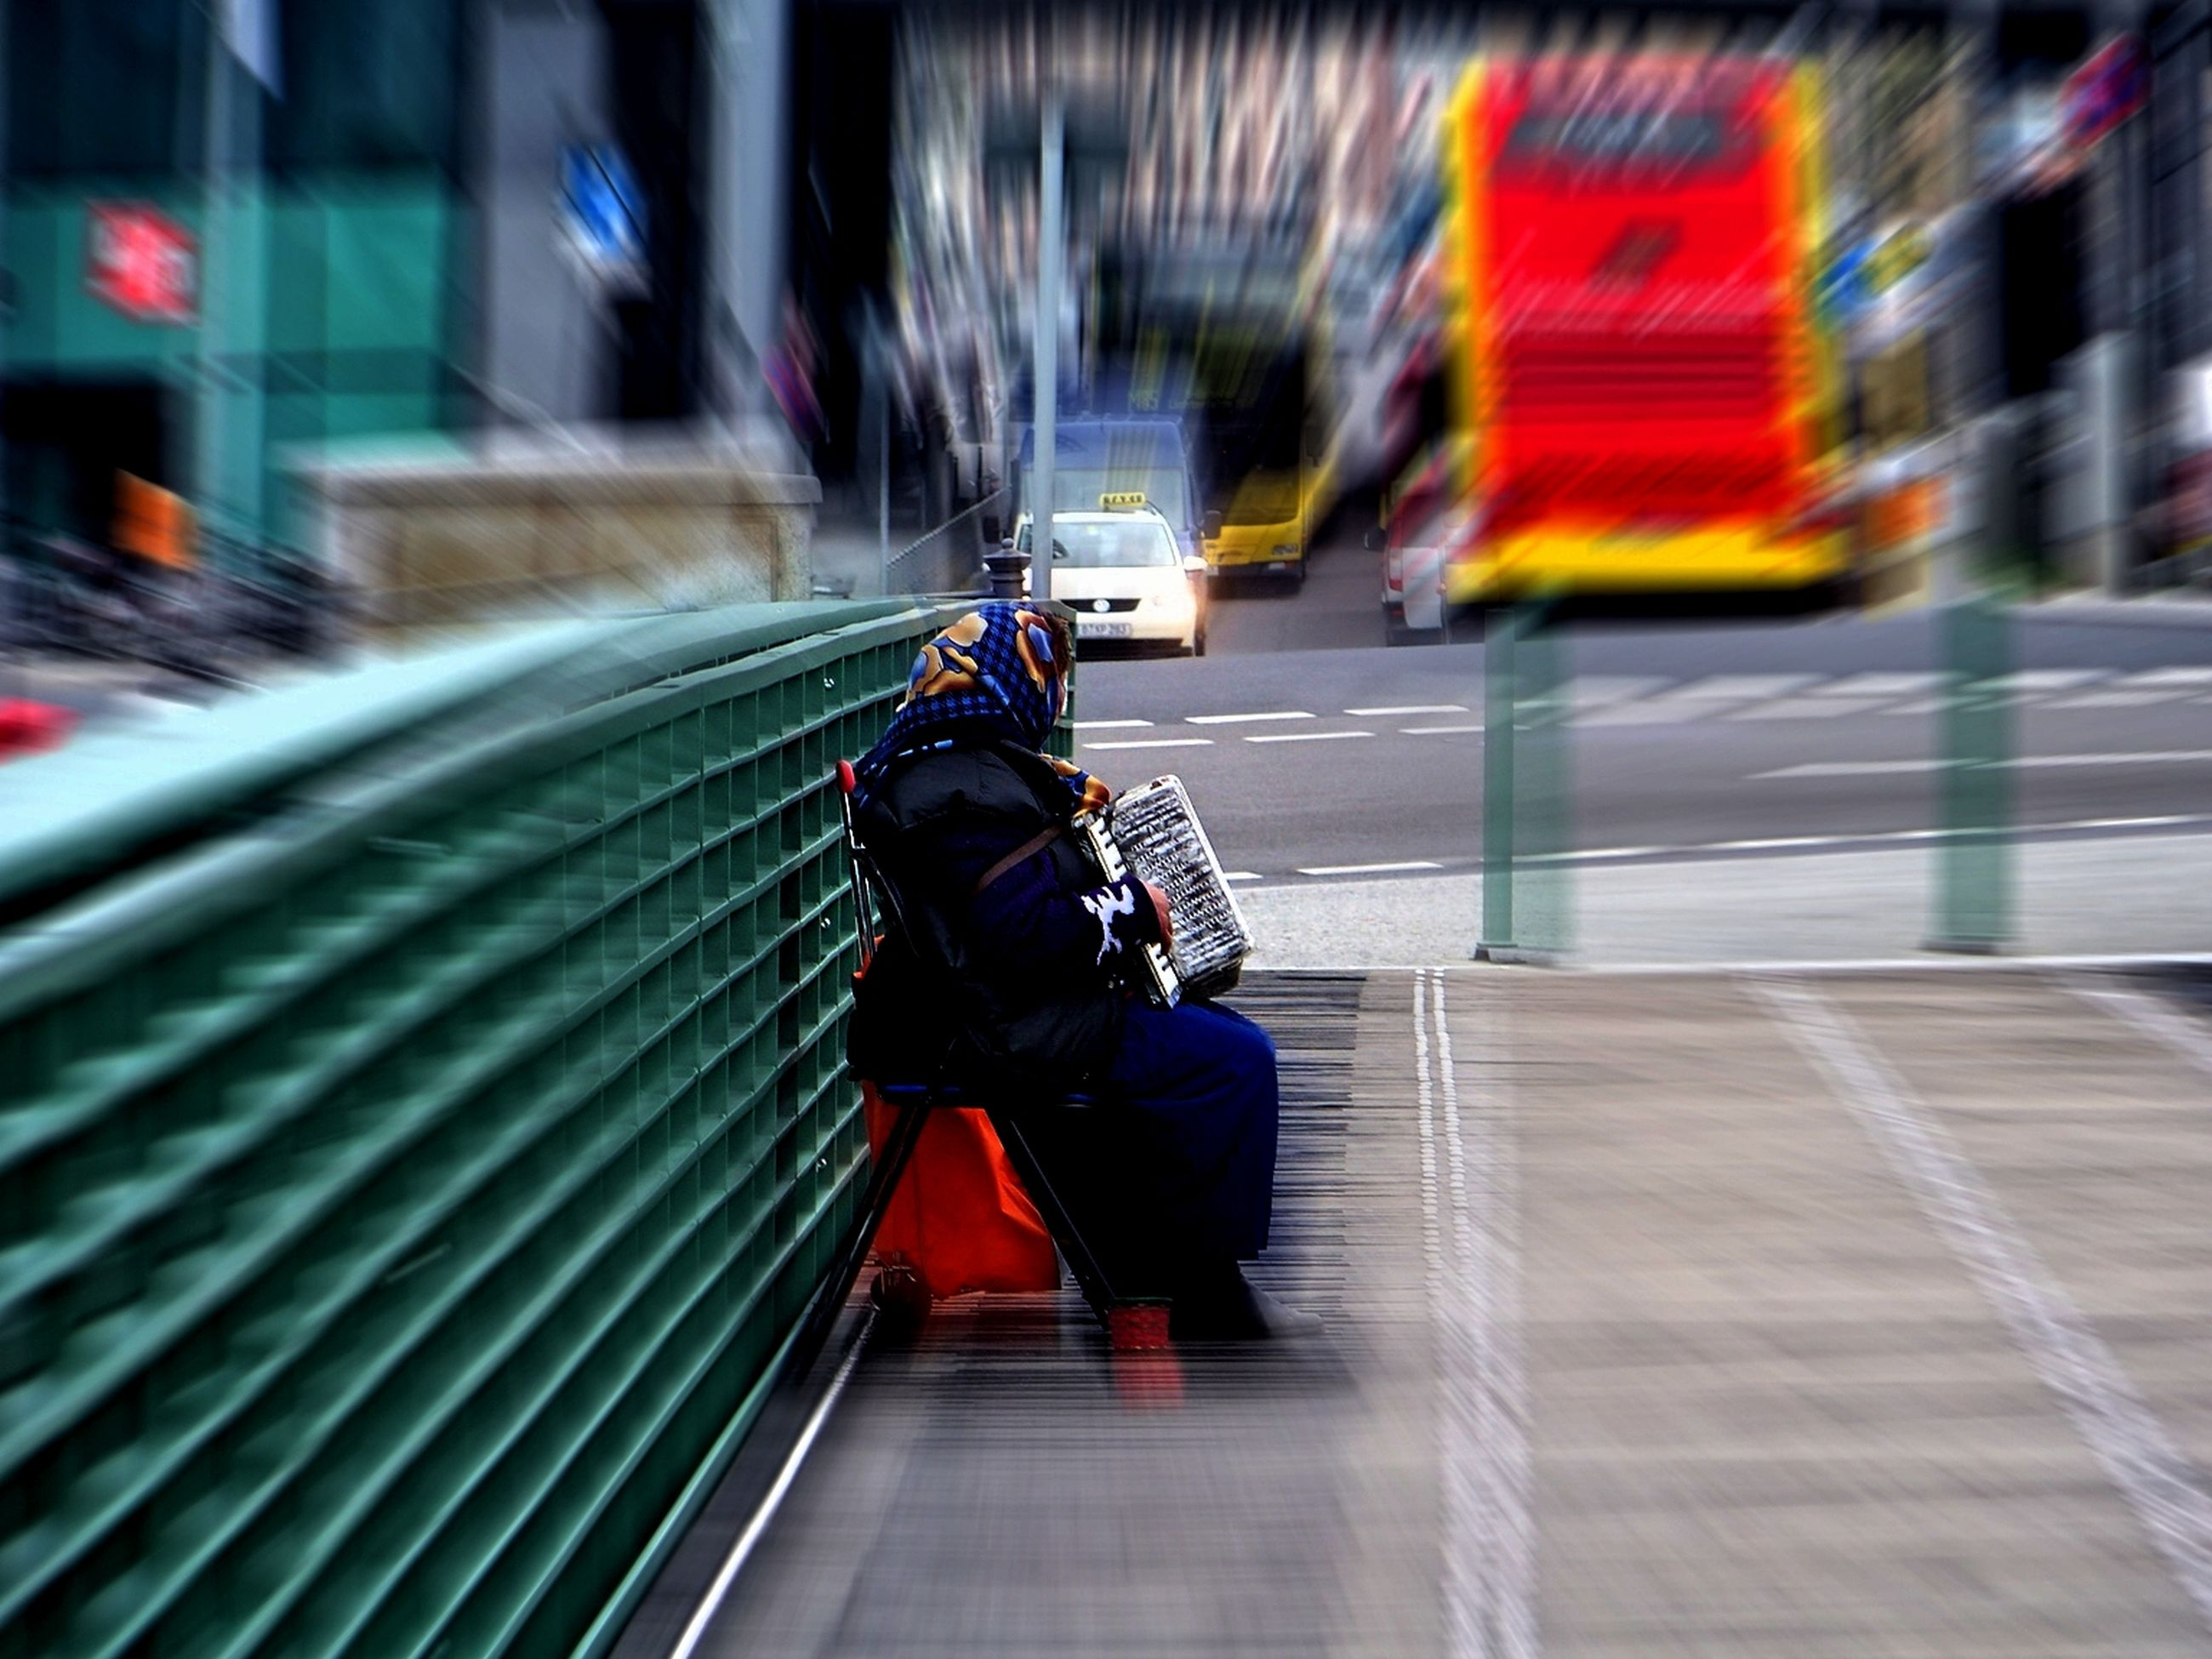 real people, lifestyles, transportation, architecture, blurred motion, motion, men, mode of transportation, leisure activity, travel, women, selective focus, rear view, city, land vehicle, railing, day, outdoors, warm clothing